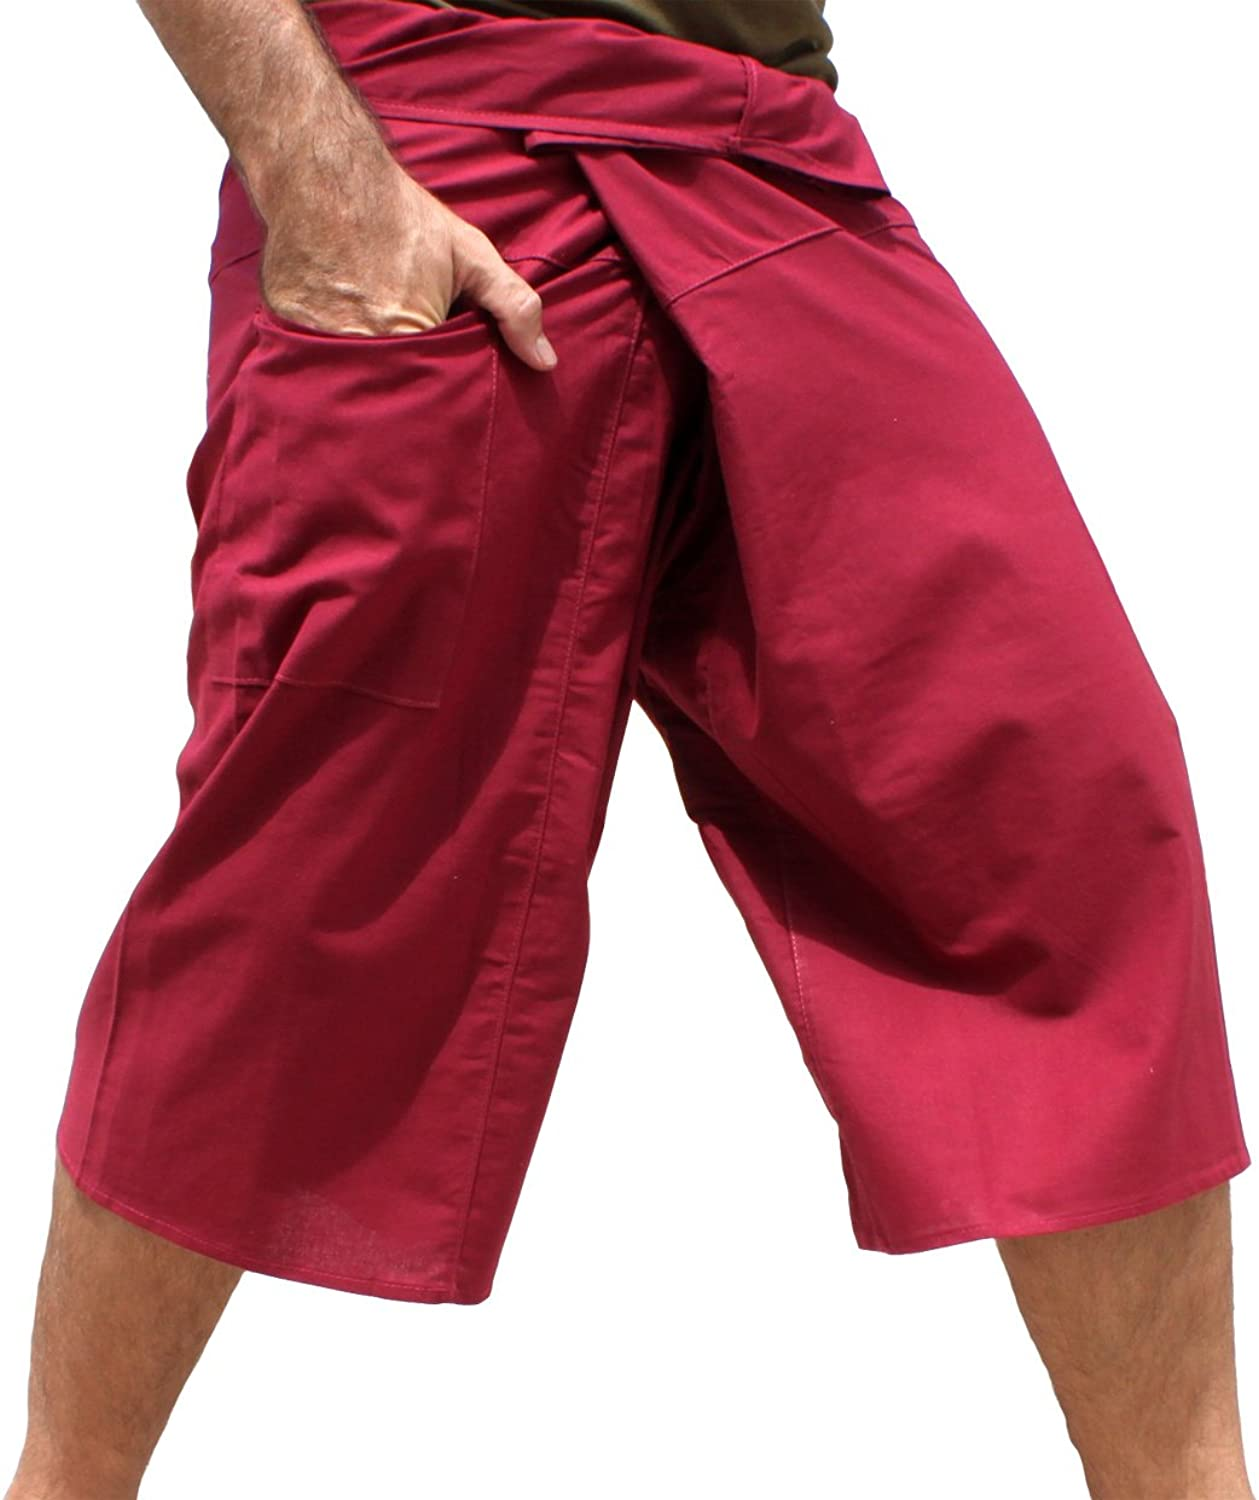 Raan Pah Muang Plain Thin Strong Cotton Thai Fisherman Capri Wrap Pants